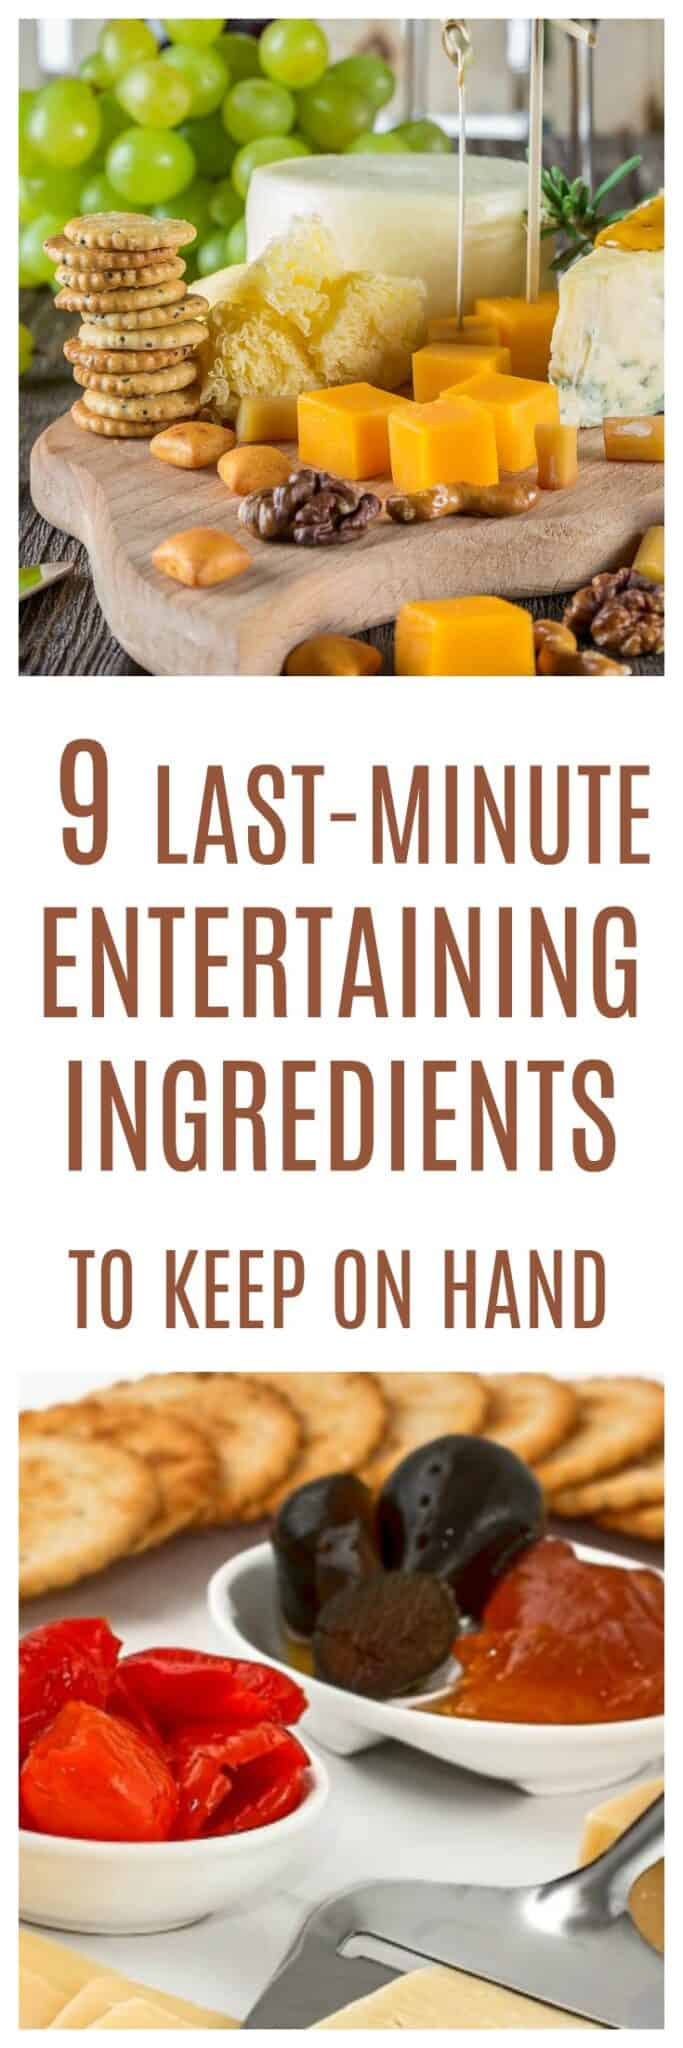 Last-Minute Entertaining Ingredients: 9 simple things to make dozens of appetizers with when guests drop by. #entertaining #appetizers #snacks #fingerfood